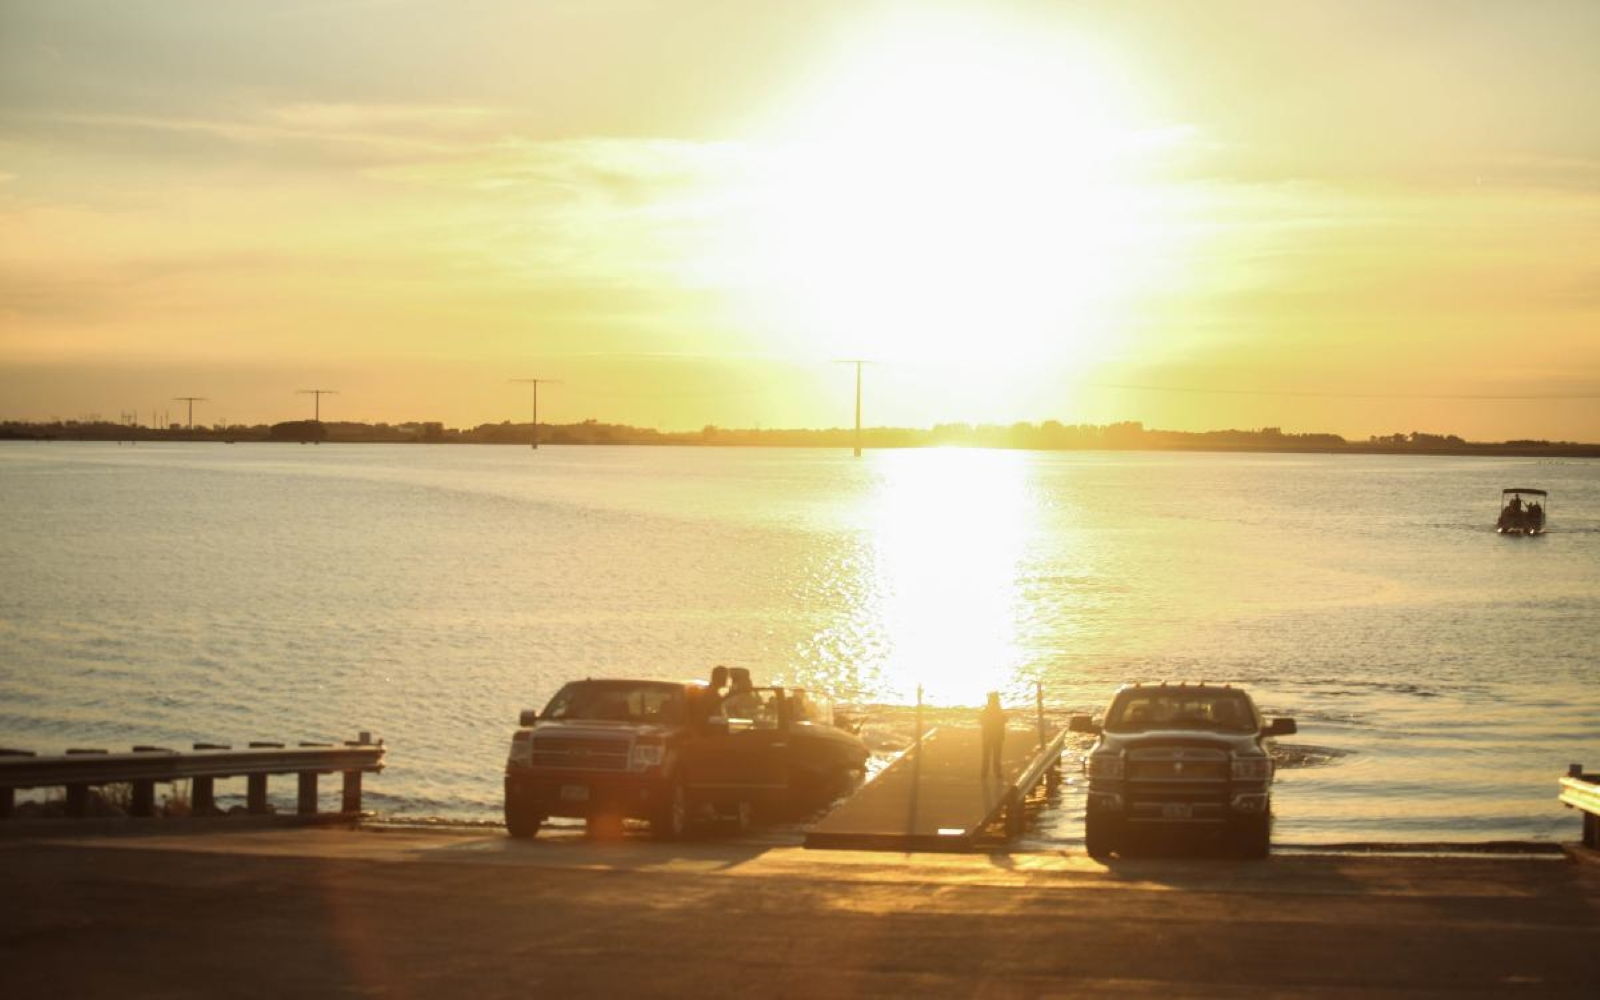 Golden Sunset reflecting off the water of Devils lake, a pontoon boat in the distance and two vehicles at the boat launch.